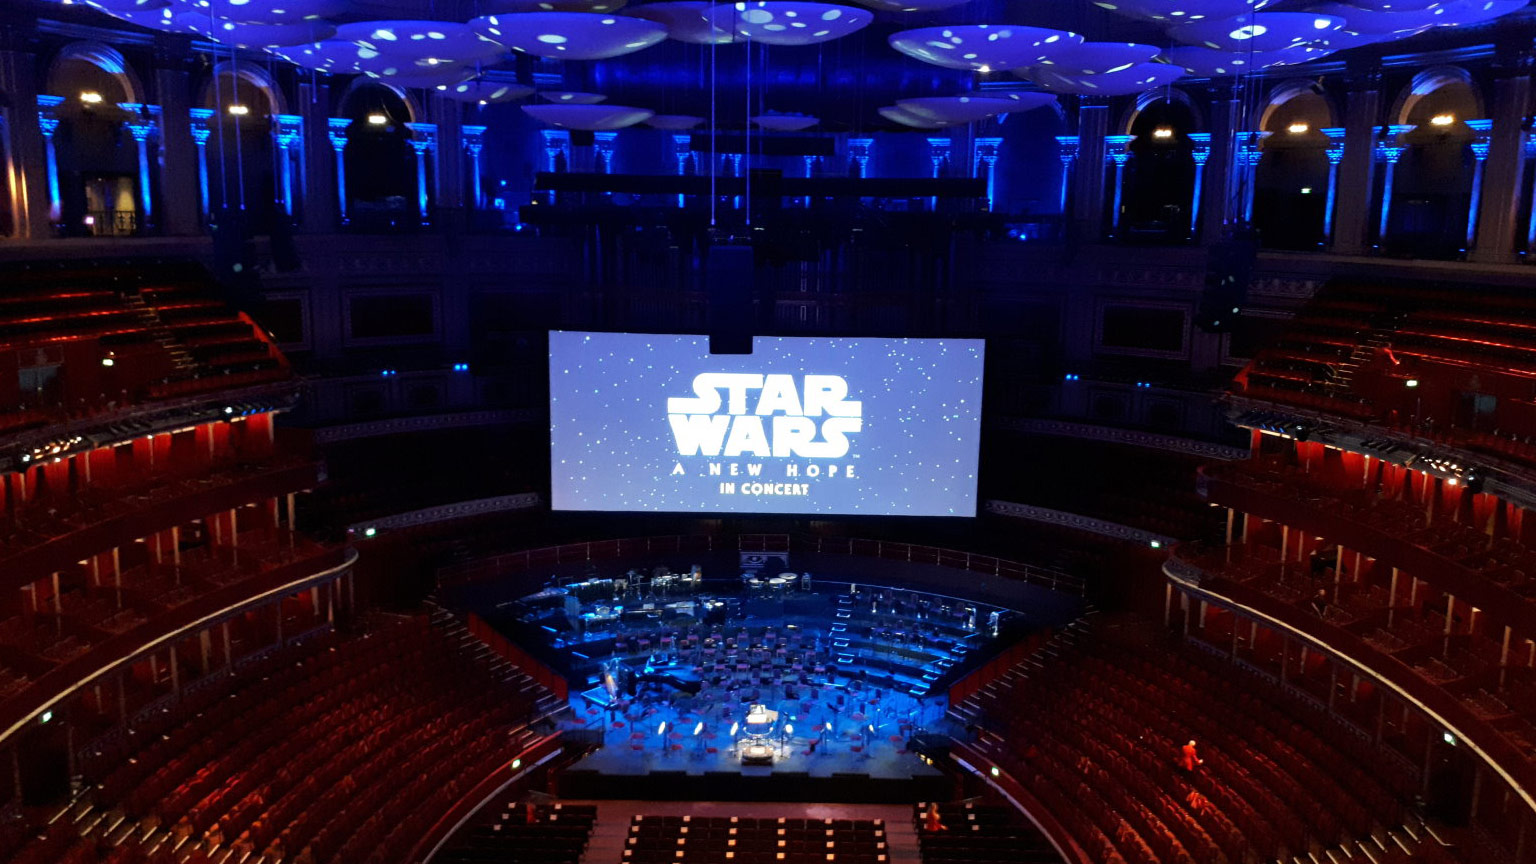 Star Wars Film Concert series at the Royal Albert Hall rehearsal.